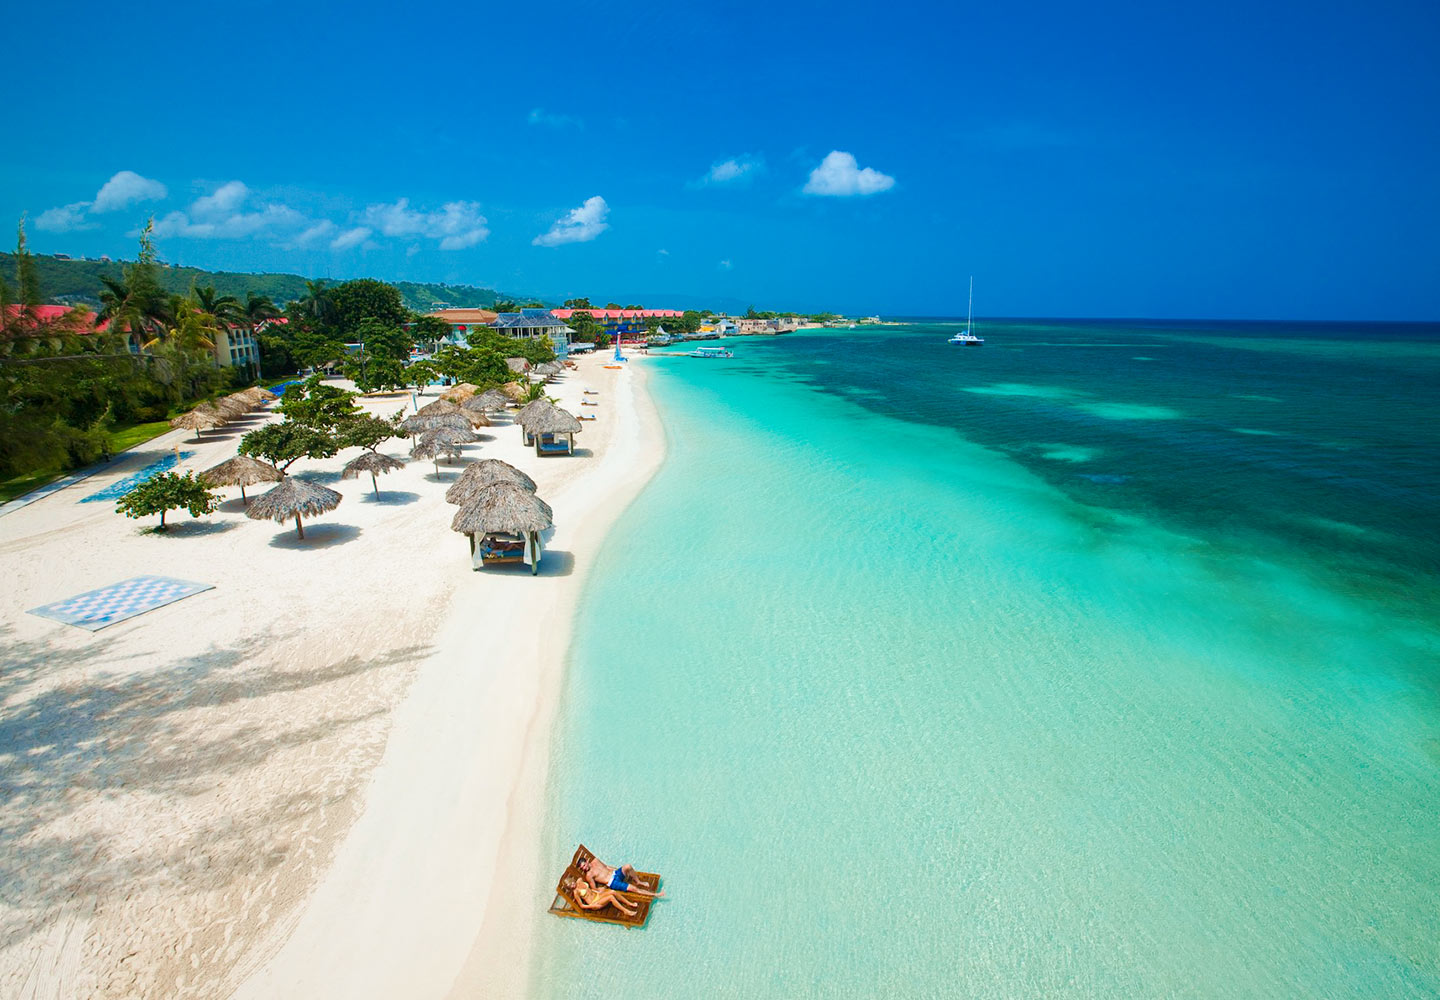 Travel Agency All-Inclusive Resort Sandals Montego Bay 020